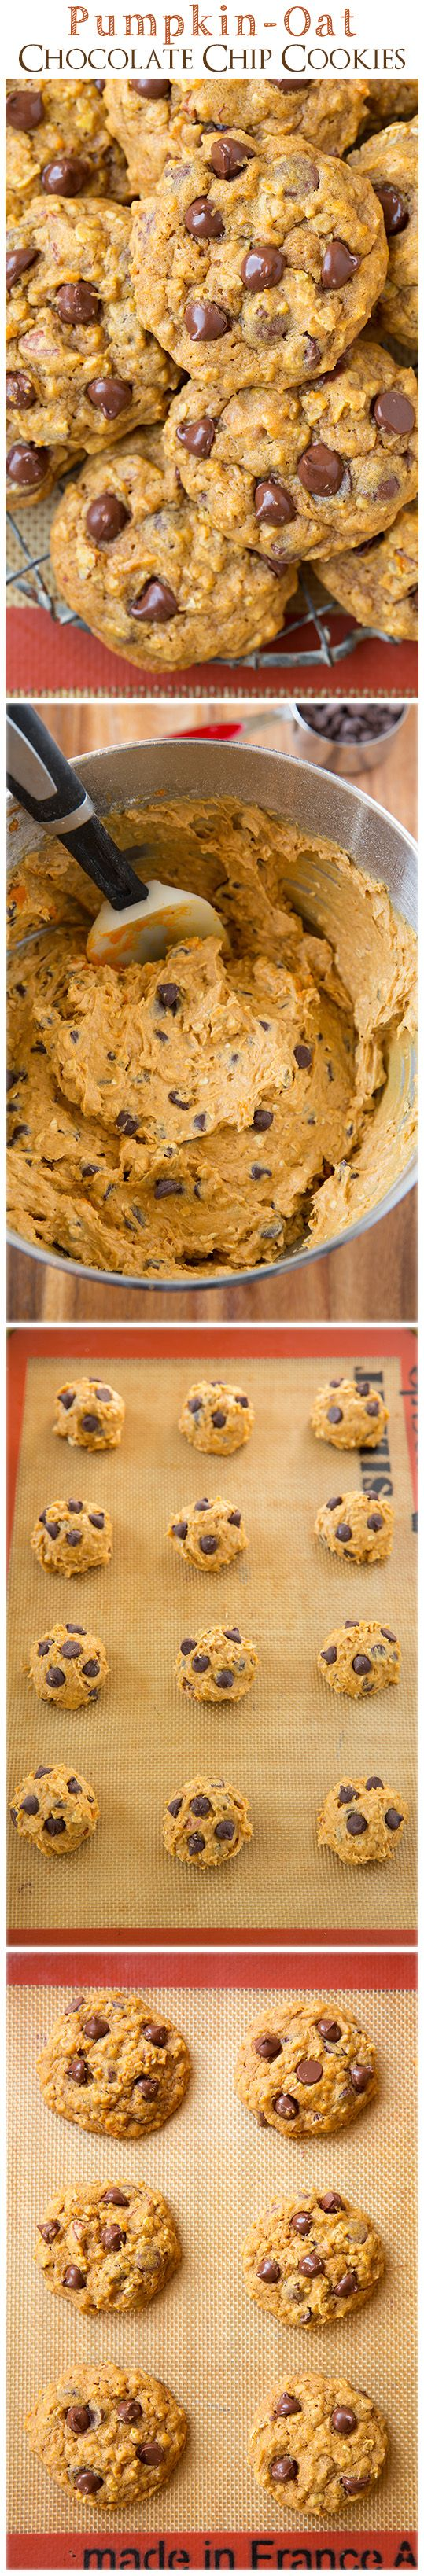 Food and Drink: Pumpkin-Oat Chocolate Chip Cookies - Cooking Class...